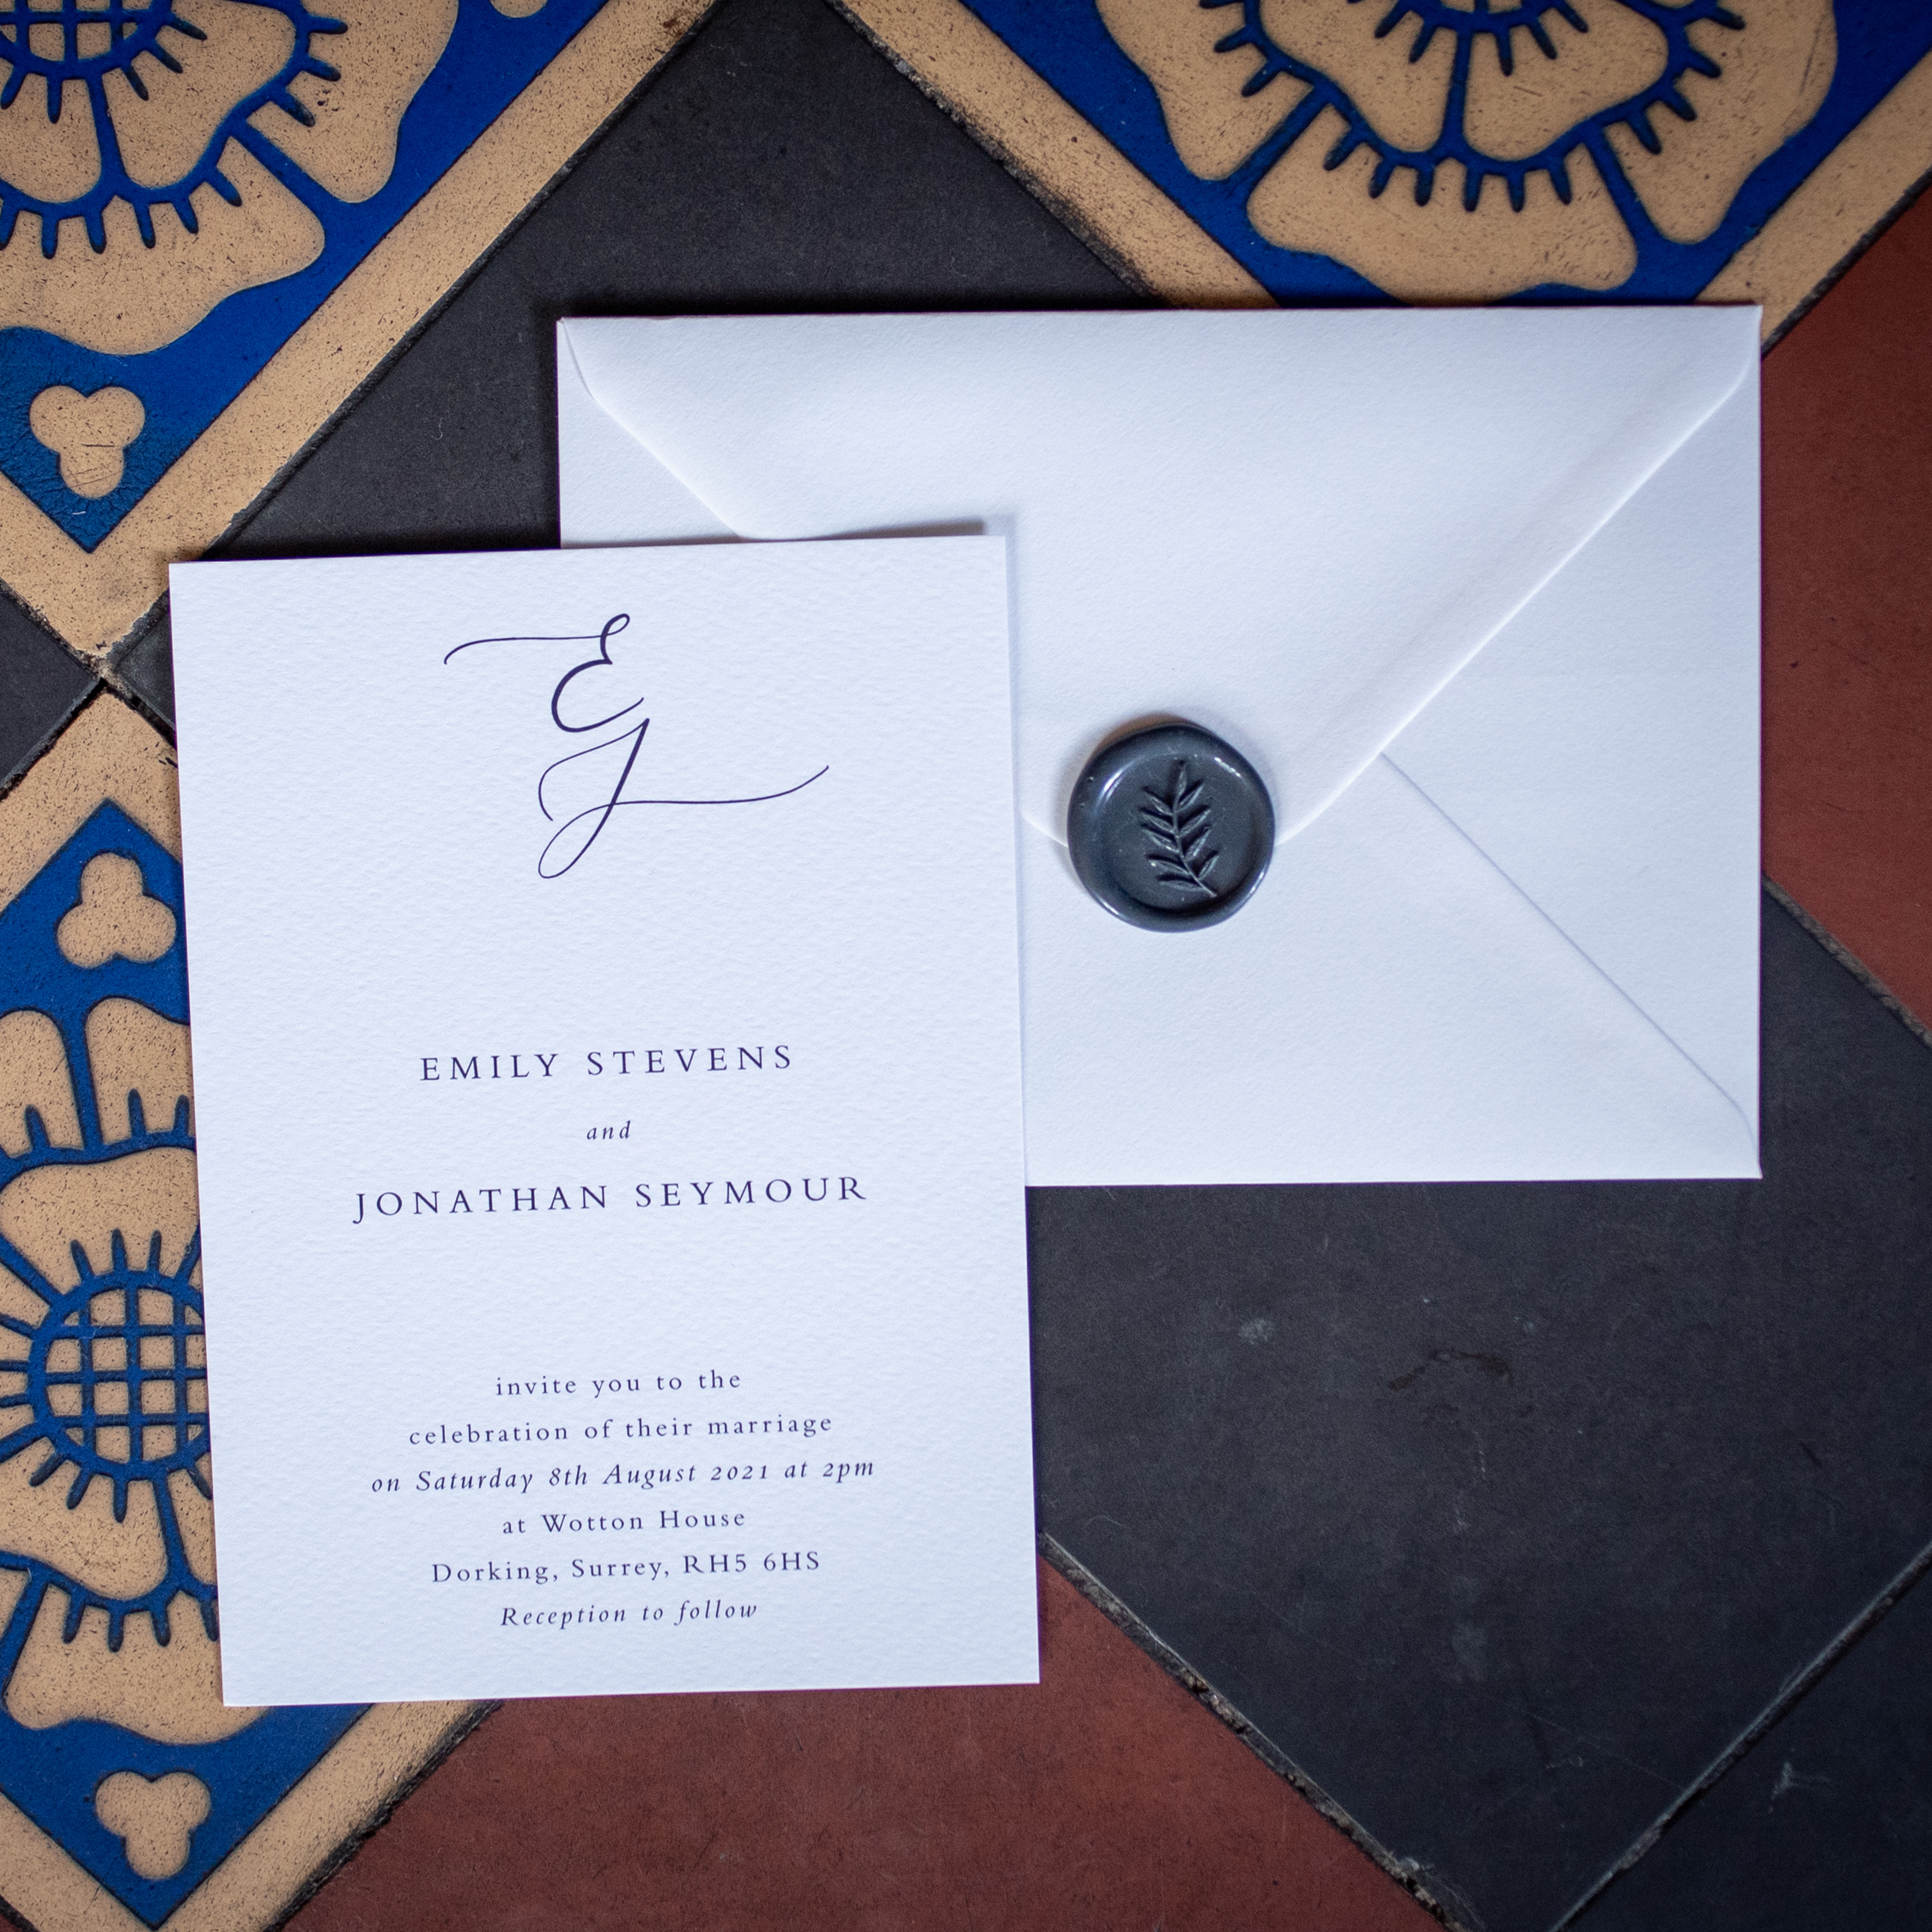 Hayley B Weddings, Wotton House recommended Surrey stationery supplier